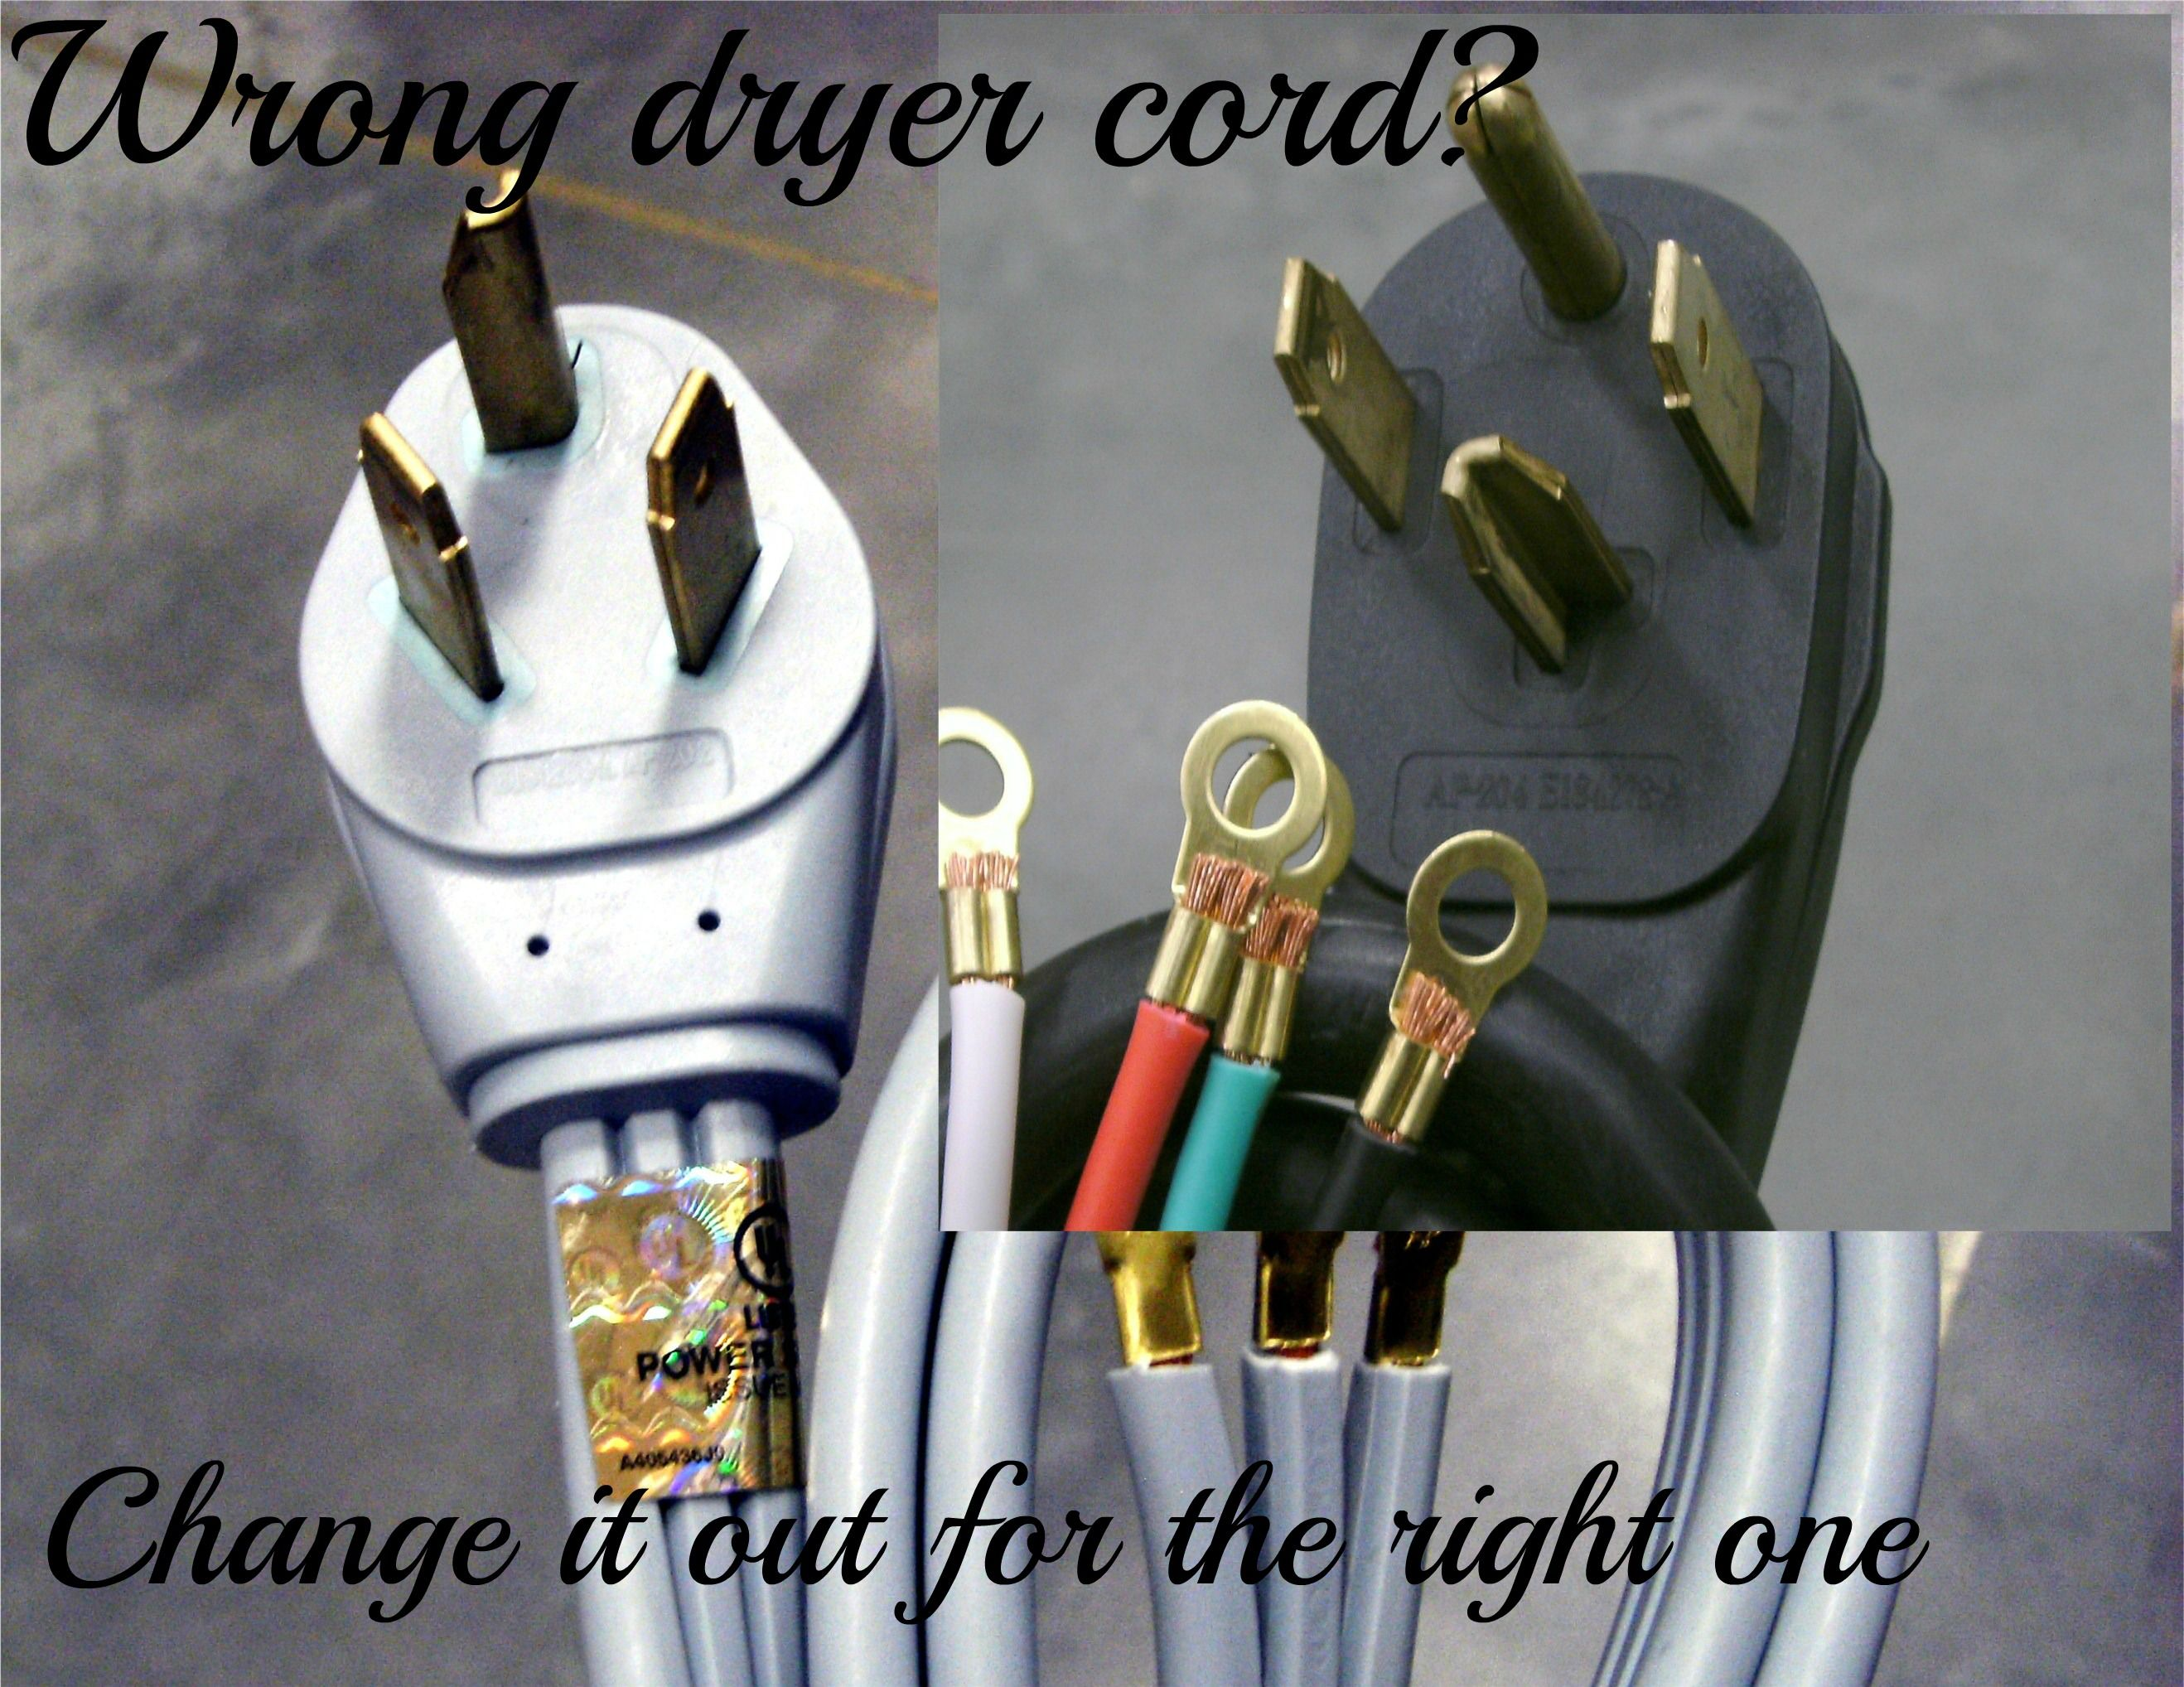 008f3bebc08145f0b0901e4baf420a22 changing a 3 prong to 4 prong dryer plug and cord cord, change wiring diagram for 4 prong dryer cord at suagrazia.org